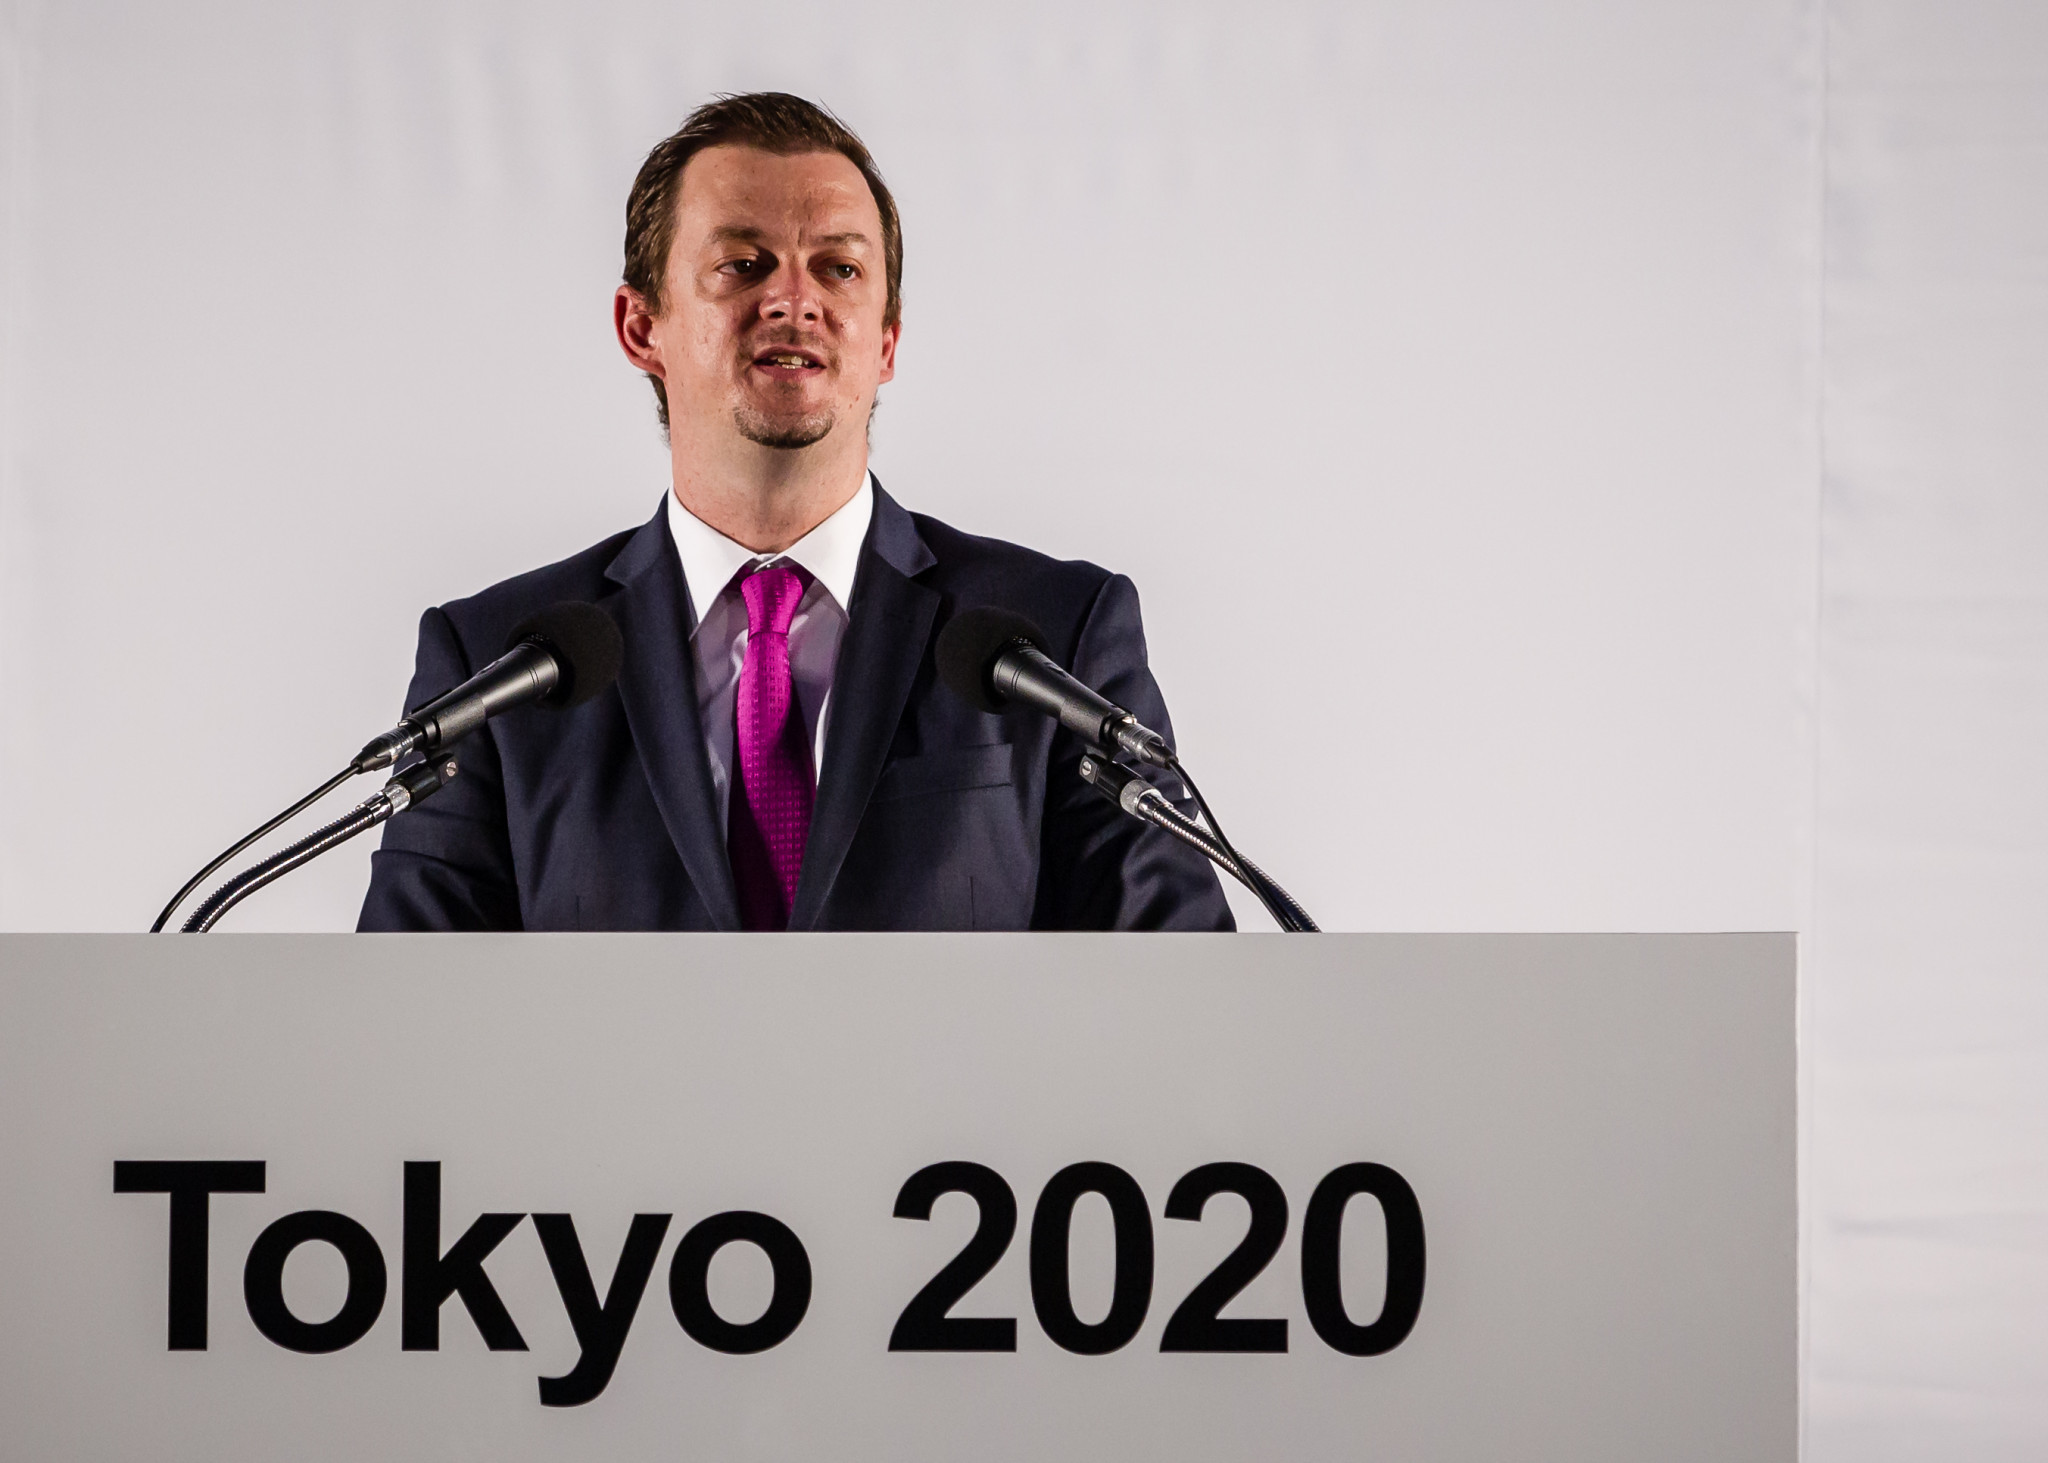 IPC President praises Tokyo 2020 Paralympics progress prior to two years to go milestone